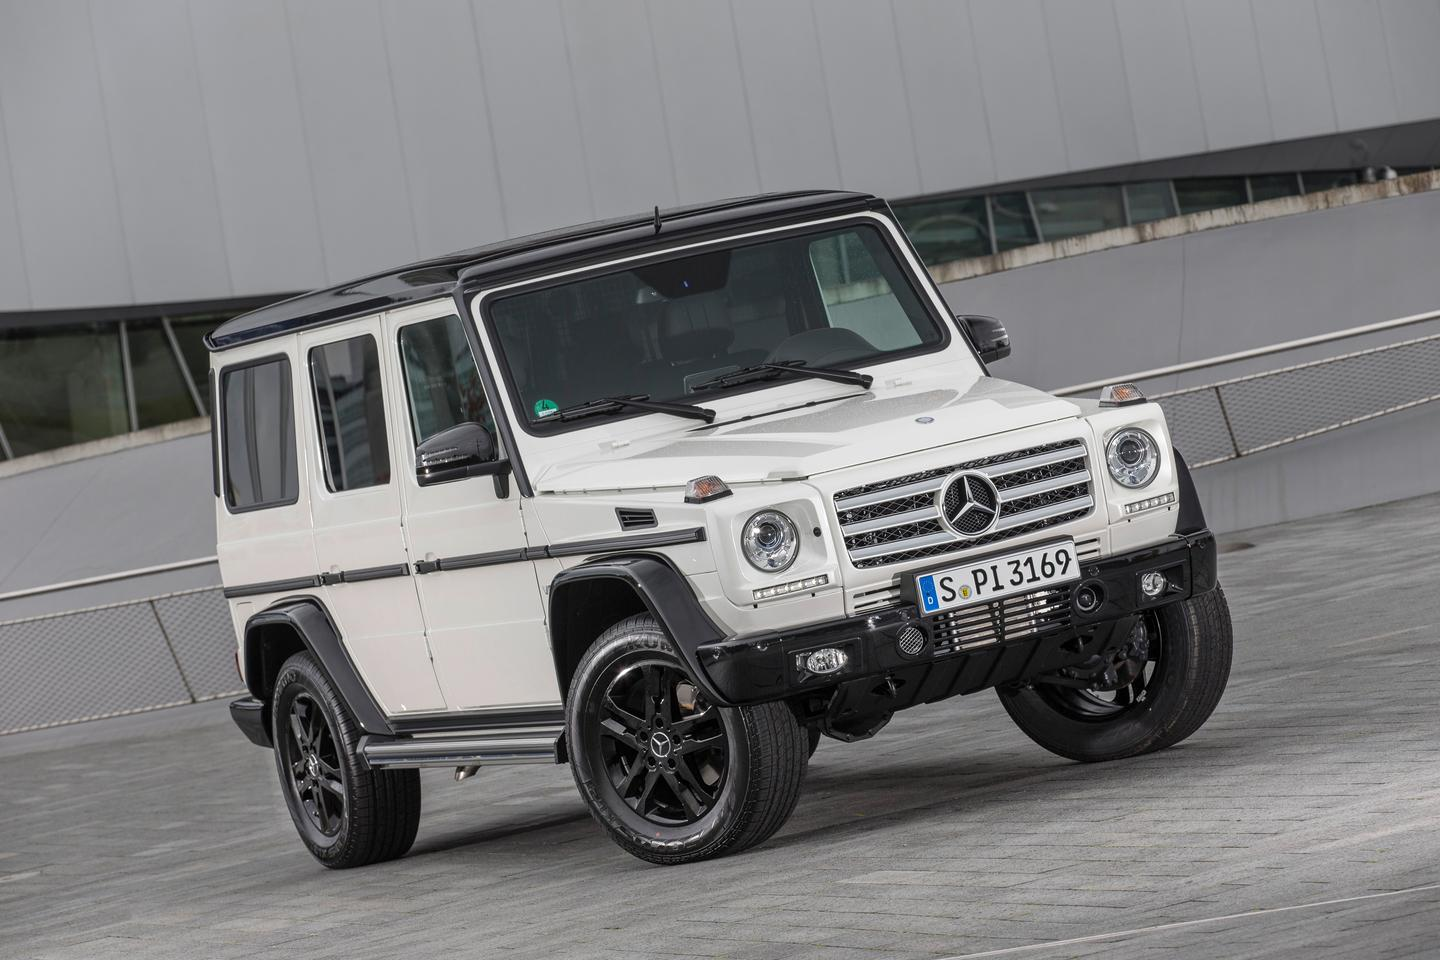 The G-Class Edition 35 features black highlights on the front and rear bumpers